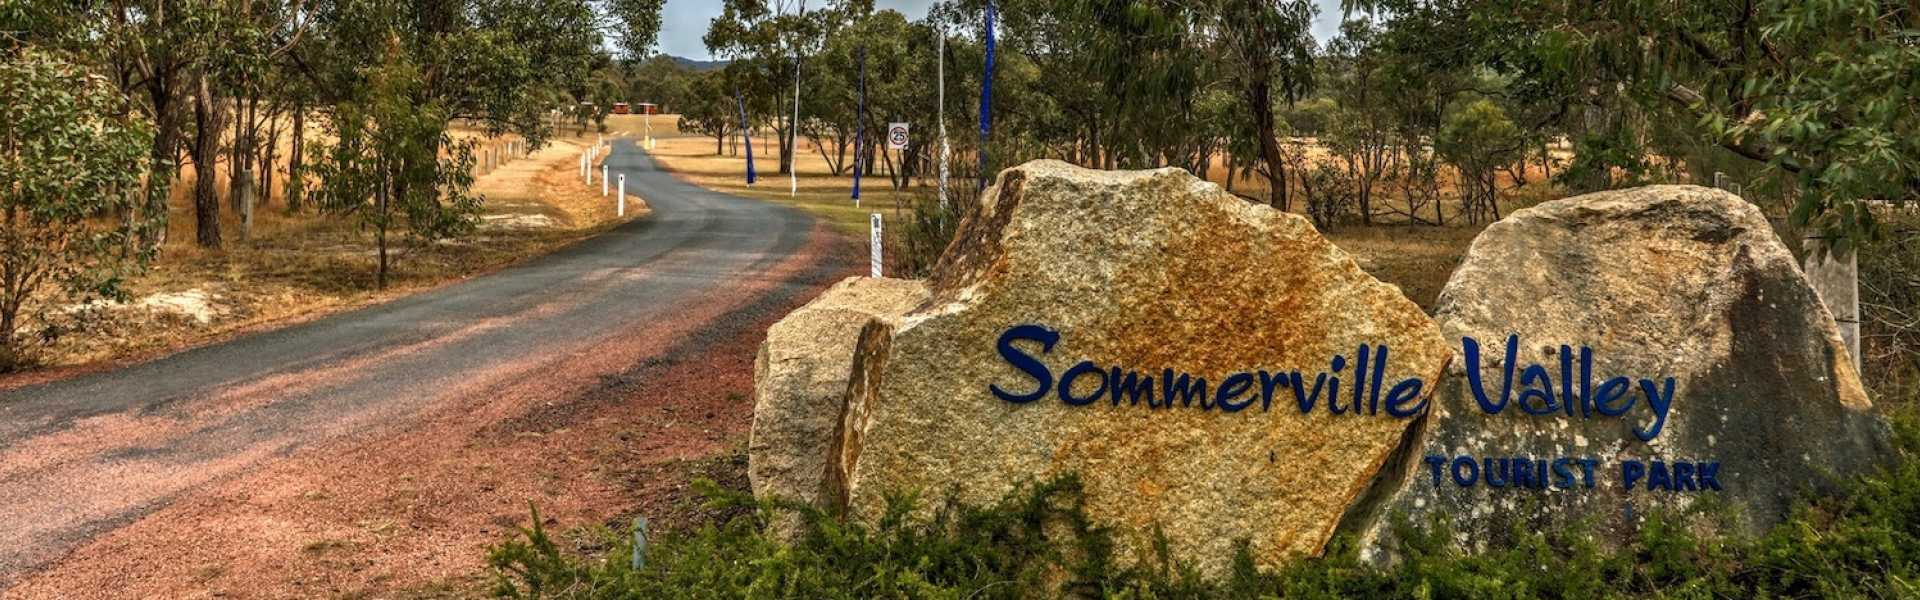 Kui Parks, Sommerville Valley Tourist Park, Stanthorpe, Entrance